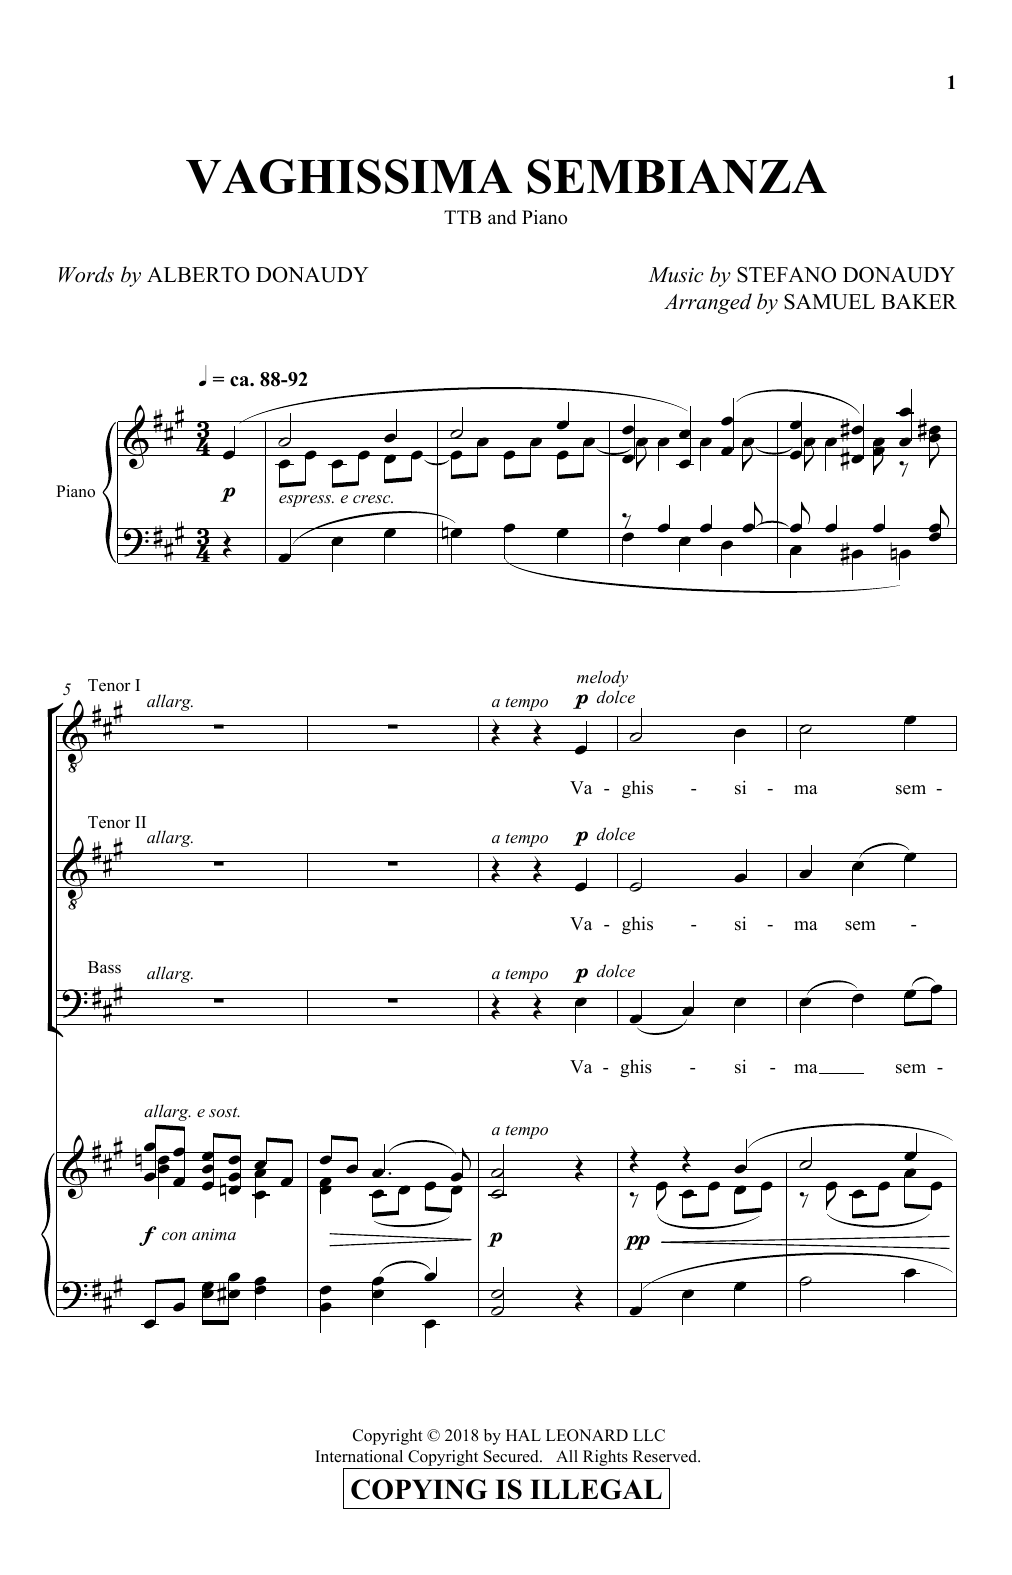 Download Albert Donaudy & Stefano Donaudy 'Vaghissima Sembianza (arr. Samuel Baker)' Digital Sheet Music Notes & Chords and start playing in minutes